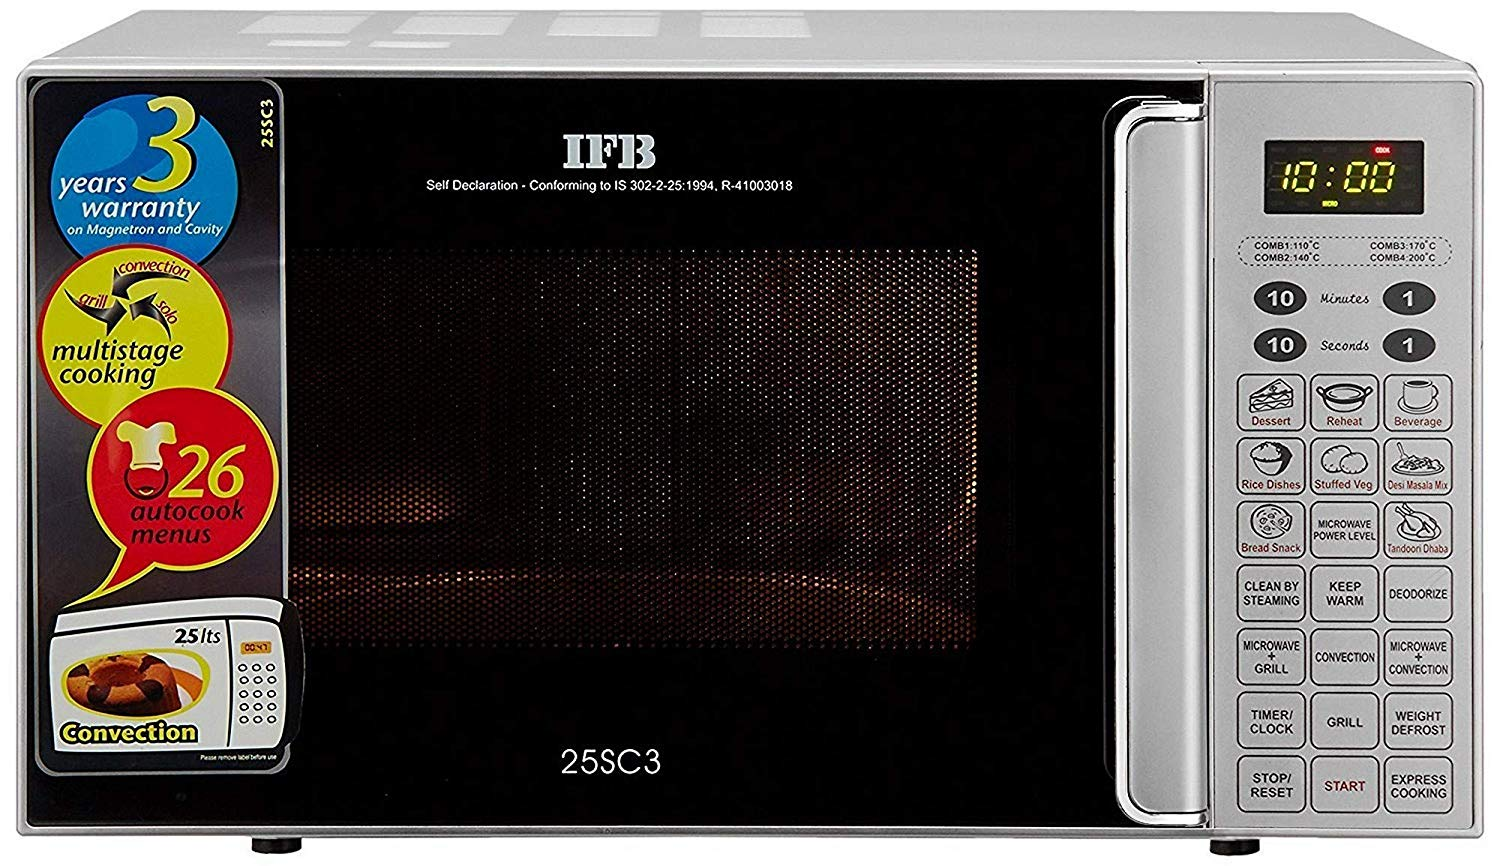 IFB 25 L Convection Microwave Oven (Metallic Silver)